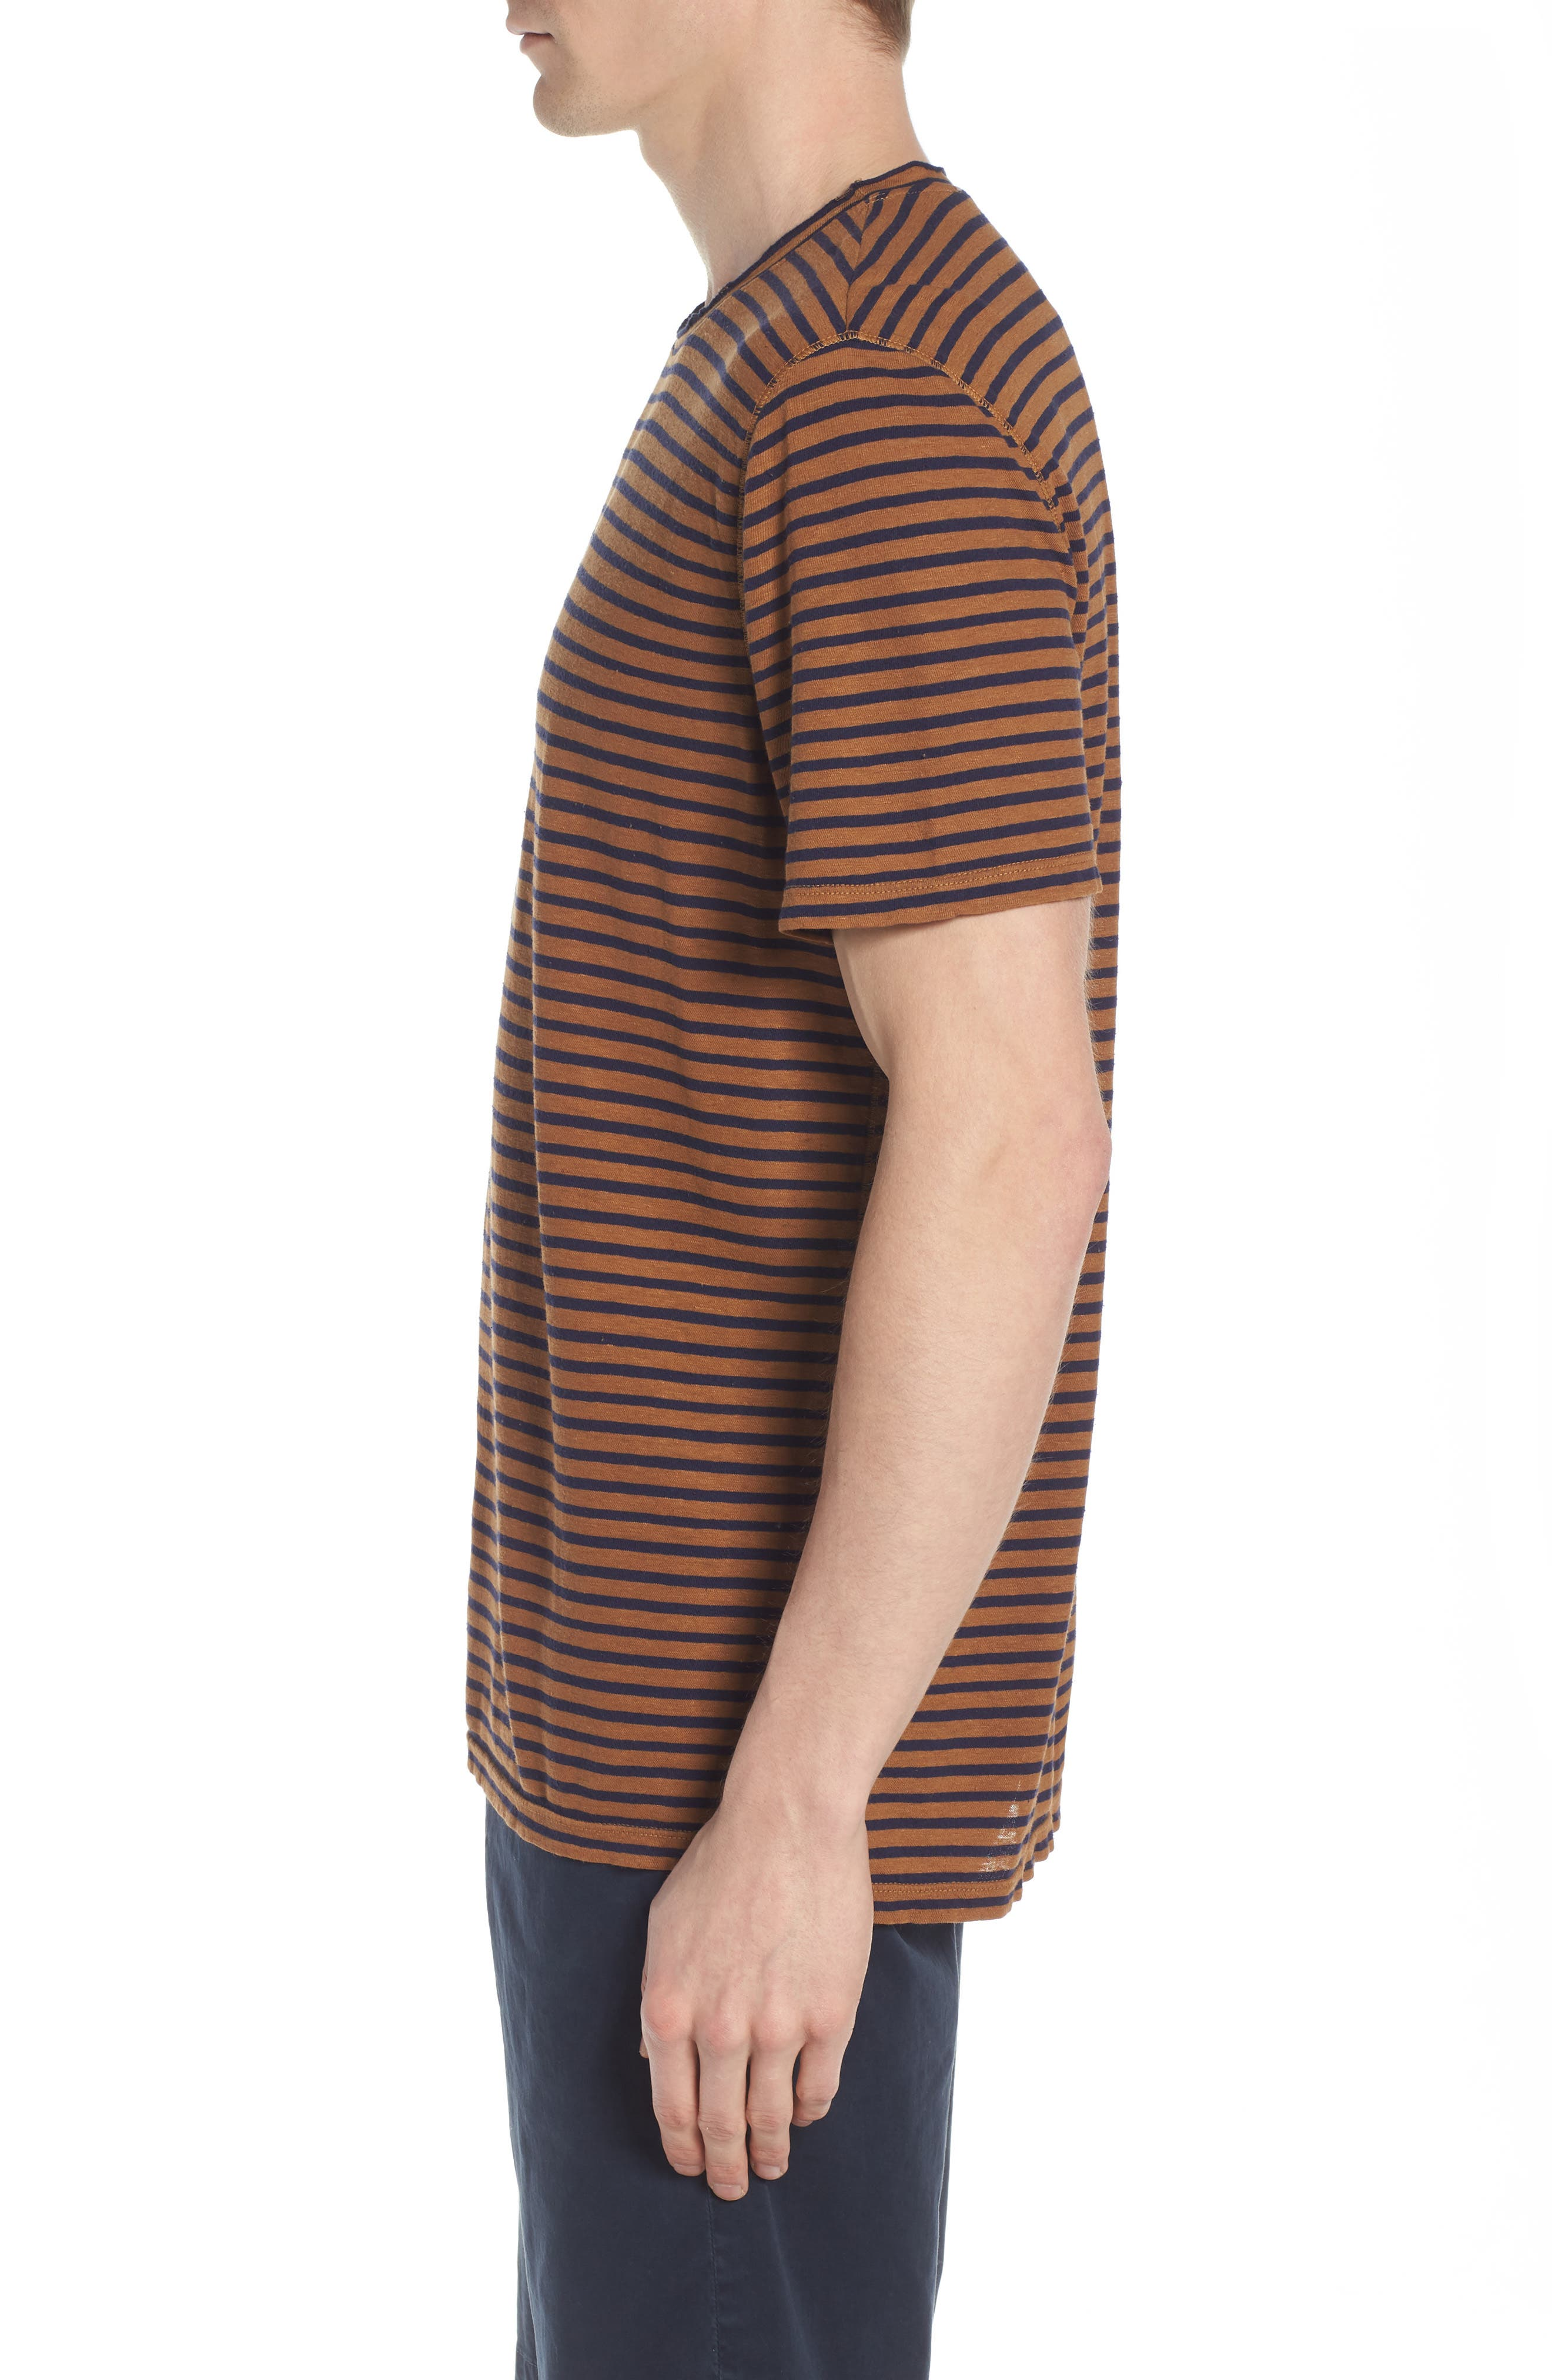 Theo Striped Cotton & Linen T-Shirt,                             Alternate thumbnail 3, color,                             BRONZE CLAY/ NAVY